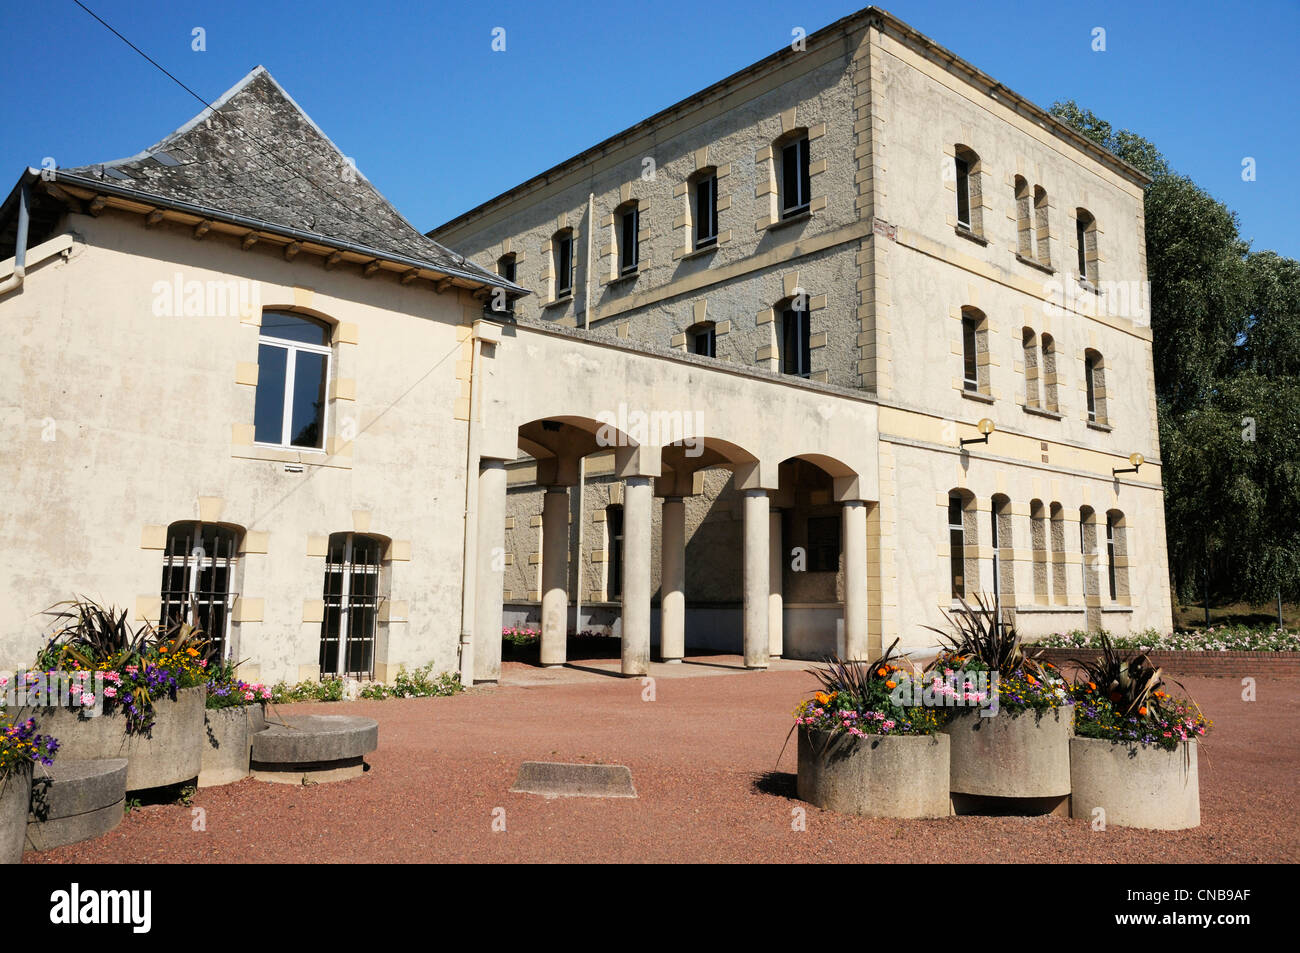 France, Nord, Maubeuge, building of the arsenal built between 1678 and 1689 according to the plans of Vauban and - Stock Image